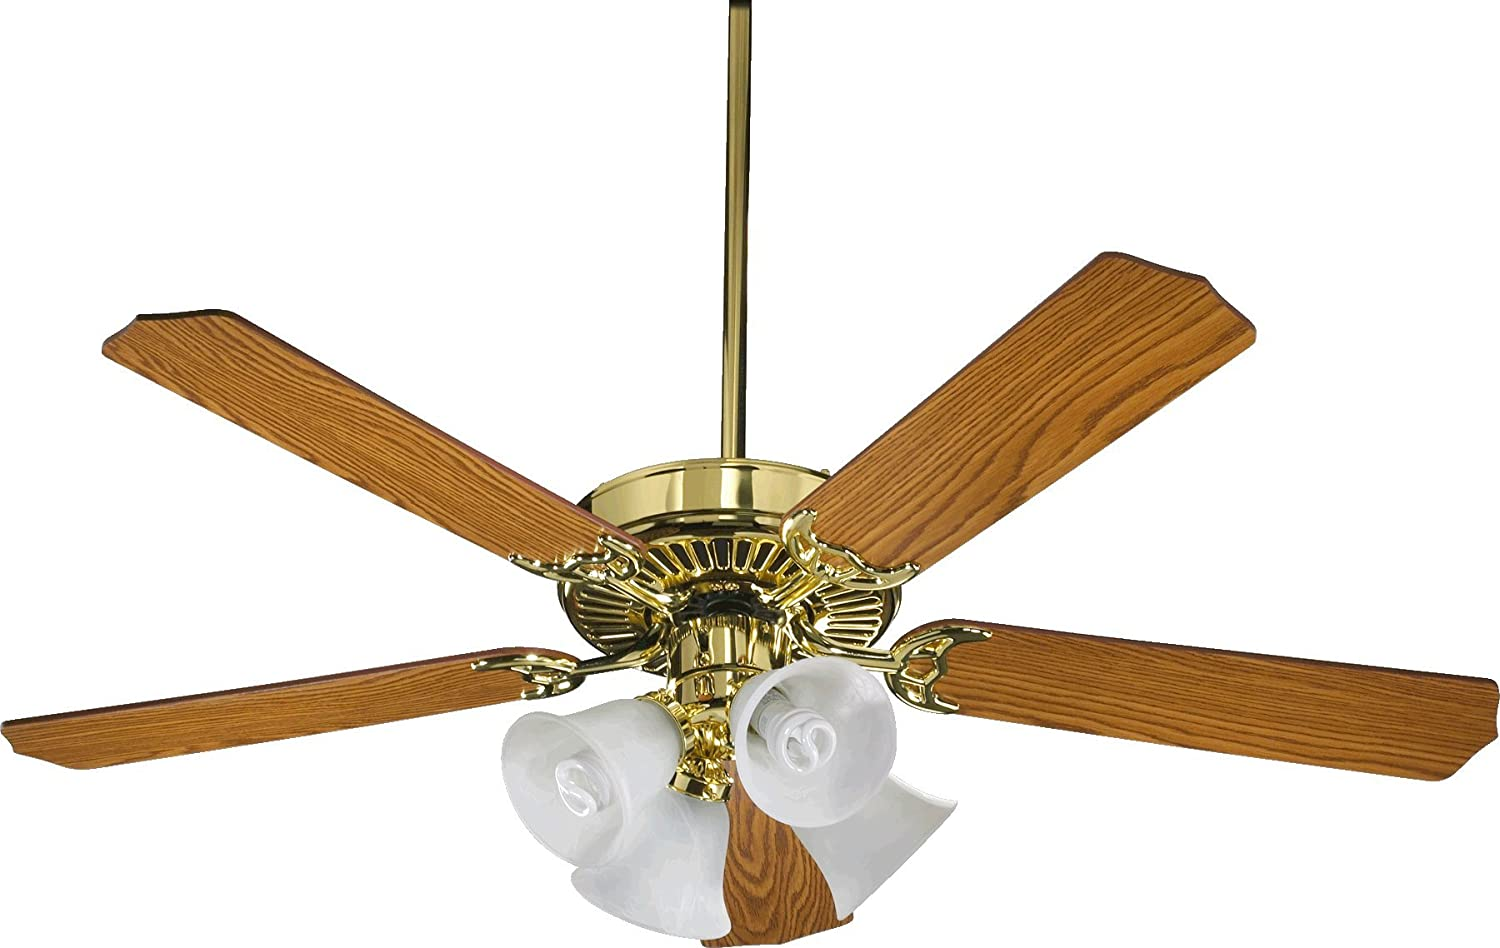 Quorum international 77525 8102 capri v 52 inch 4 light cfl ceiling quorum international 77525 8102 capri v 52 inch 4 light cfl ceiling fan polished brass finish with faux alabaster glass shades and reversible blades audiocablefo